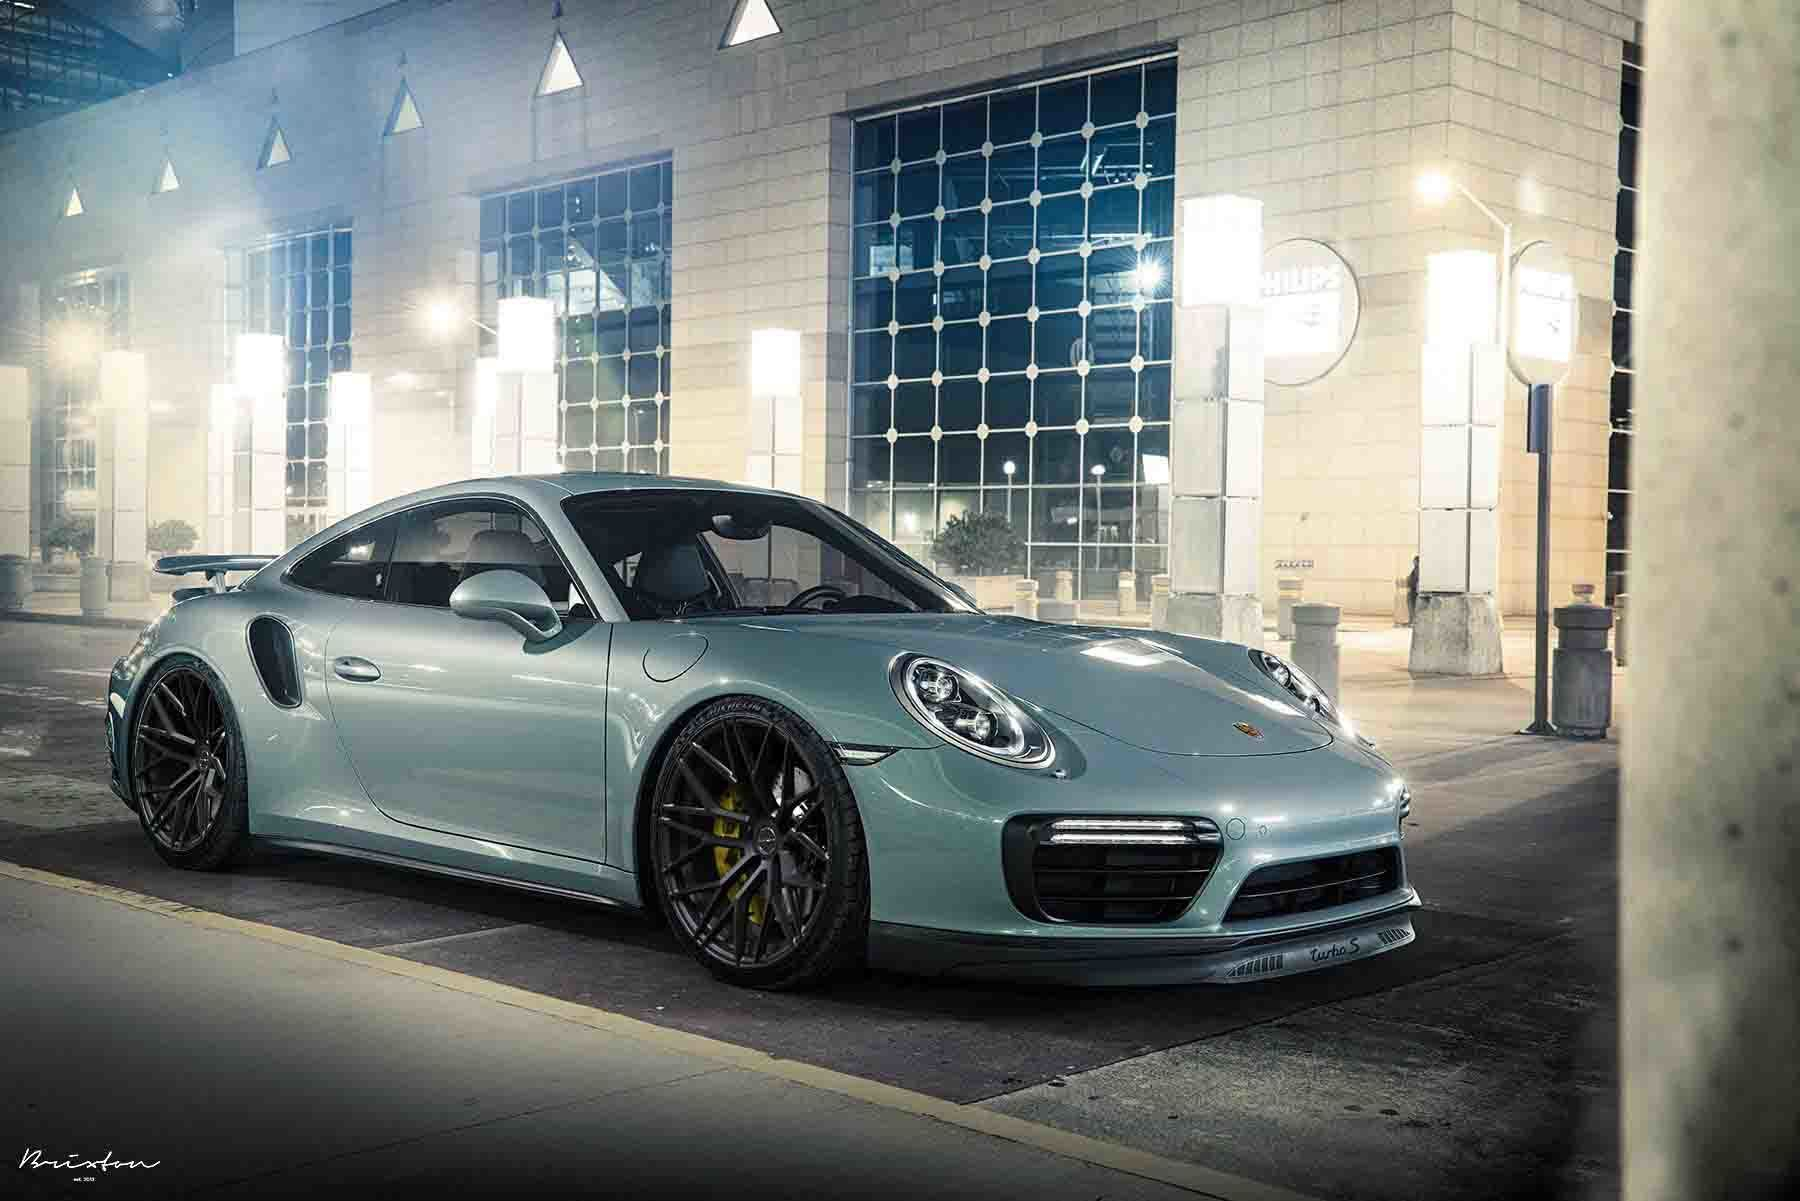 images-products-1-3017-232975305-grey-porsche-991-turbo-s-brixton-forged-cm10-radial-forged-flow-form-satin-black-1800x1201.jpg